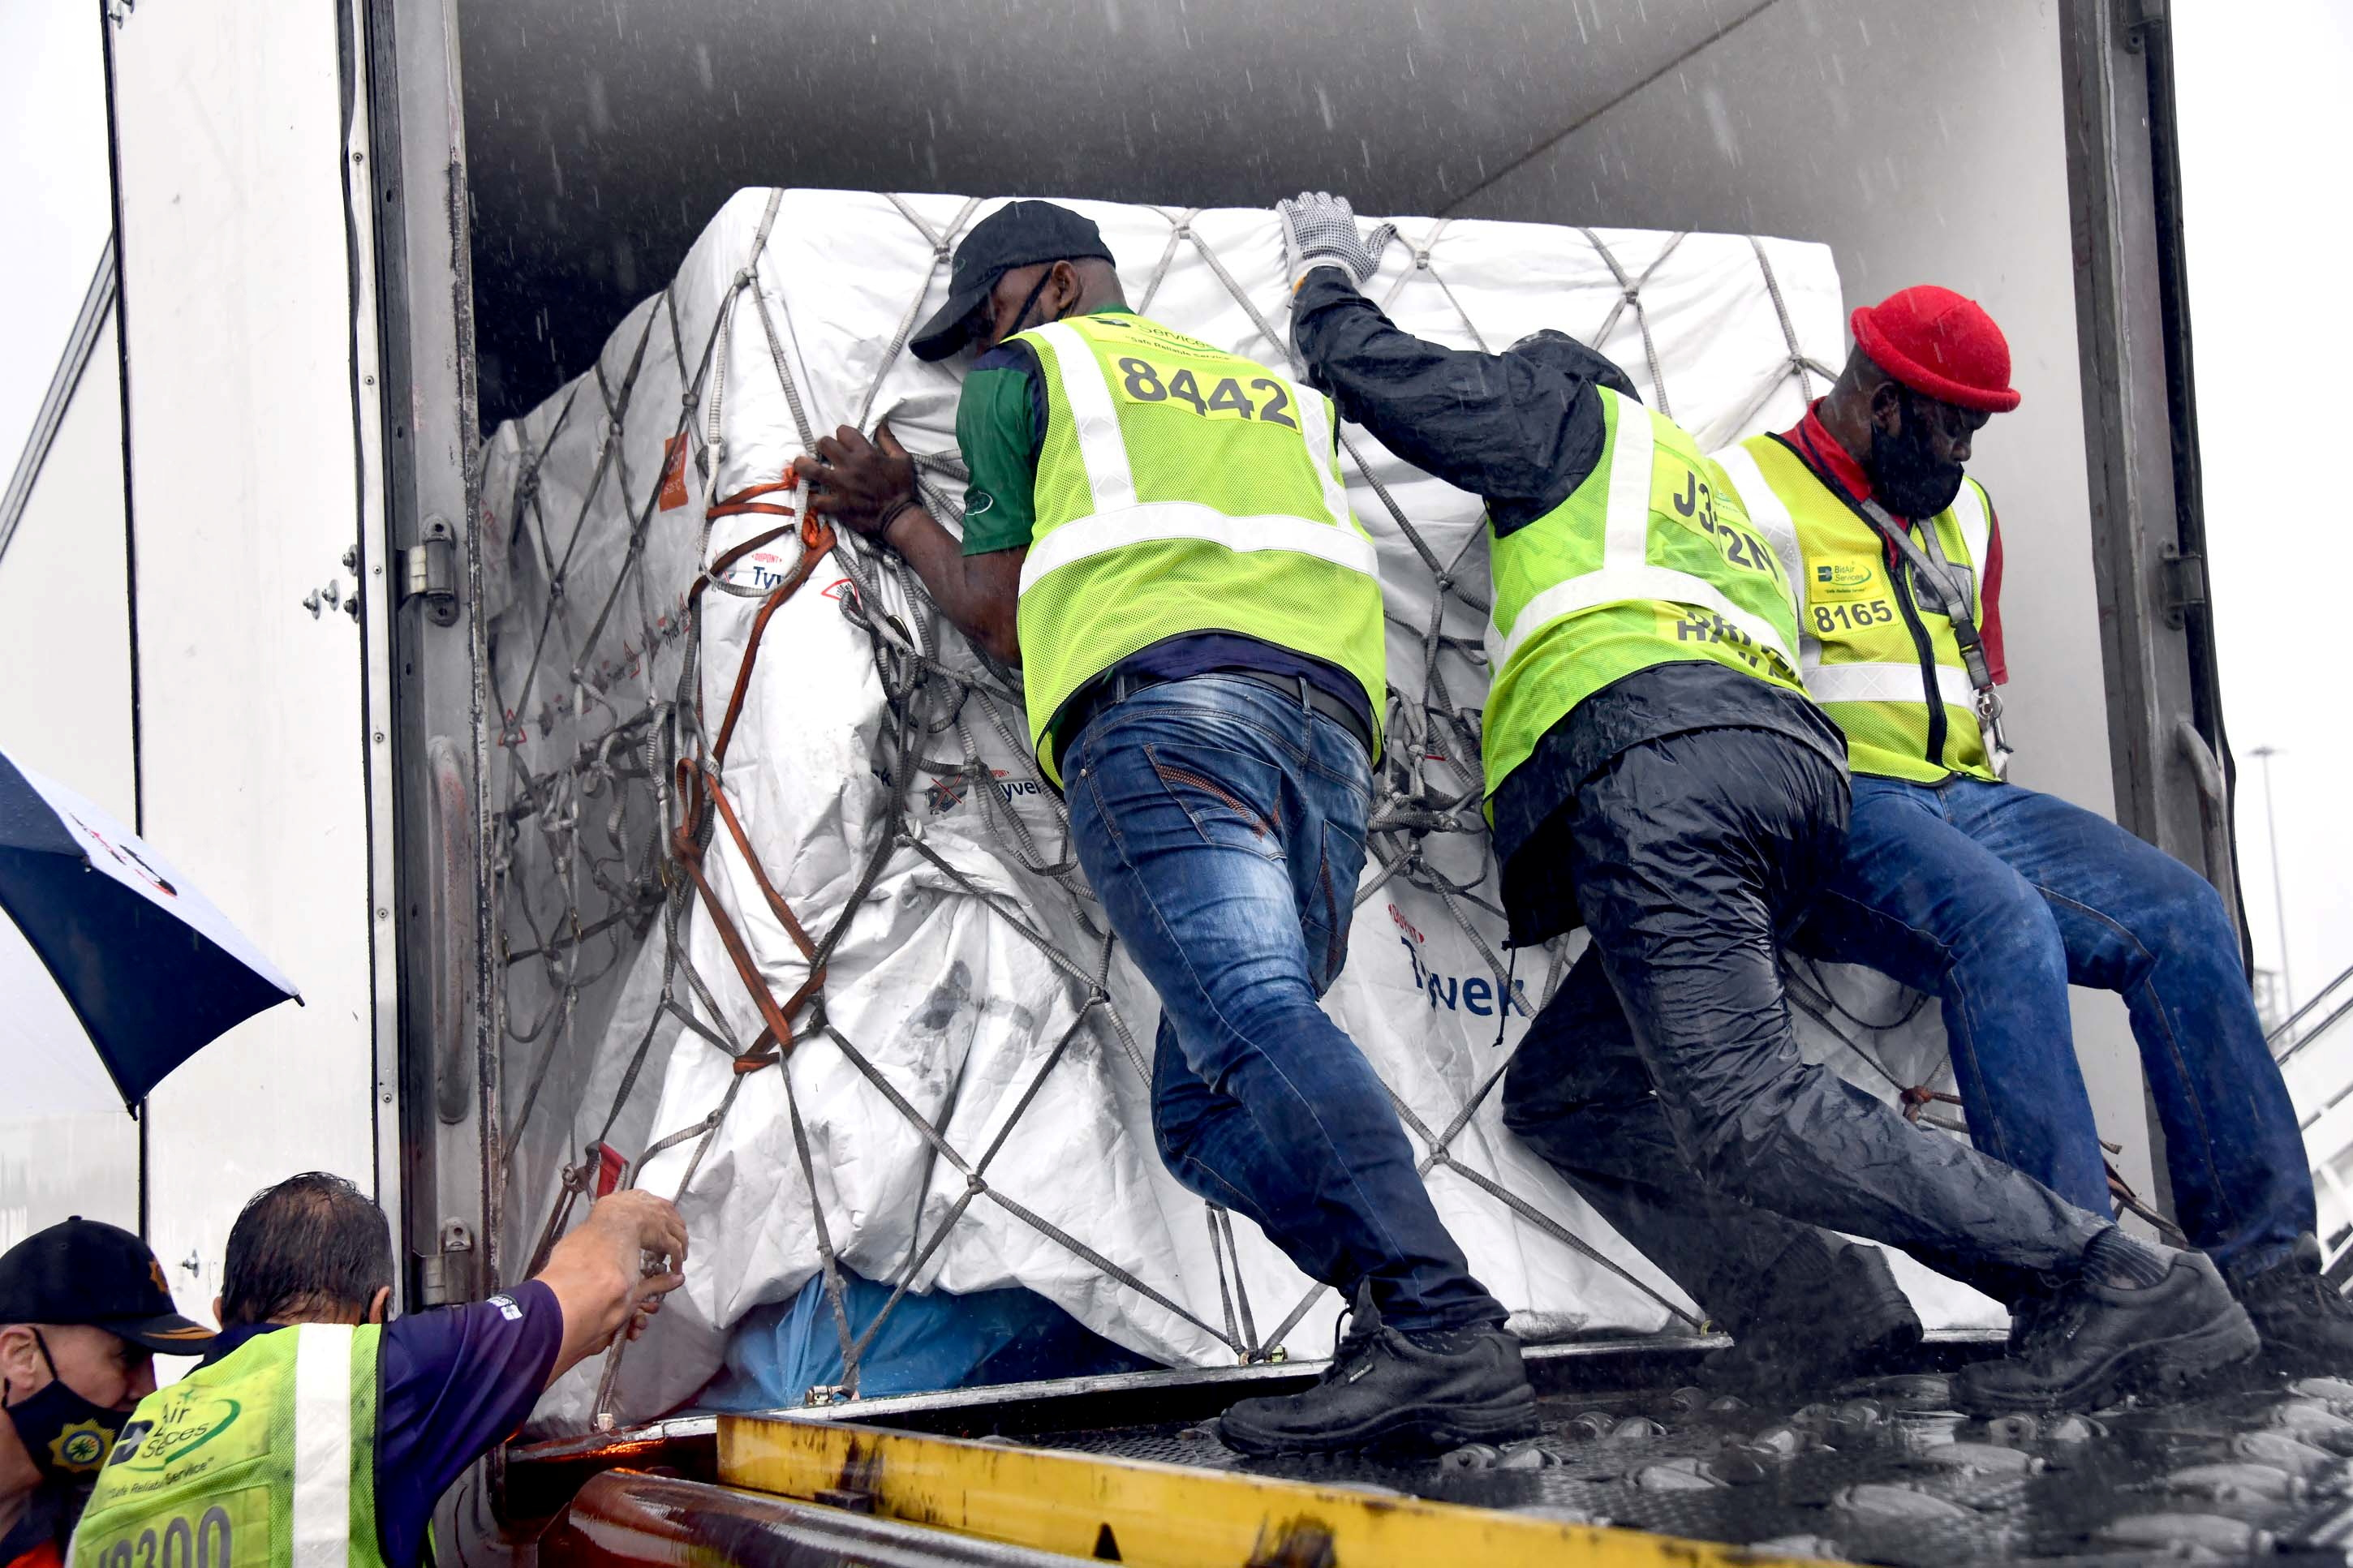 Workers load South Africa's first coronavirus disease (COVID-19) vaccine doses as they arrive at OR Tambo airport in Johannesburg, South Africa, in this handout picture taken February 1, 2021. Elmond Jiyane for GCIS/Handout via REUTERS.